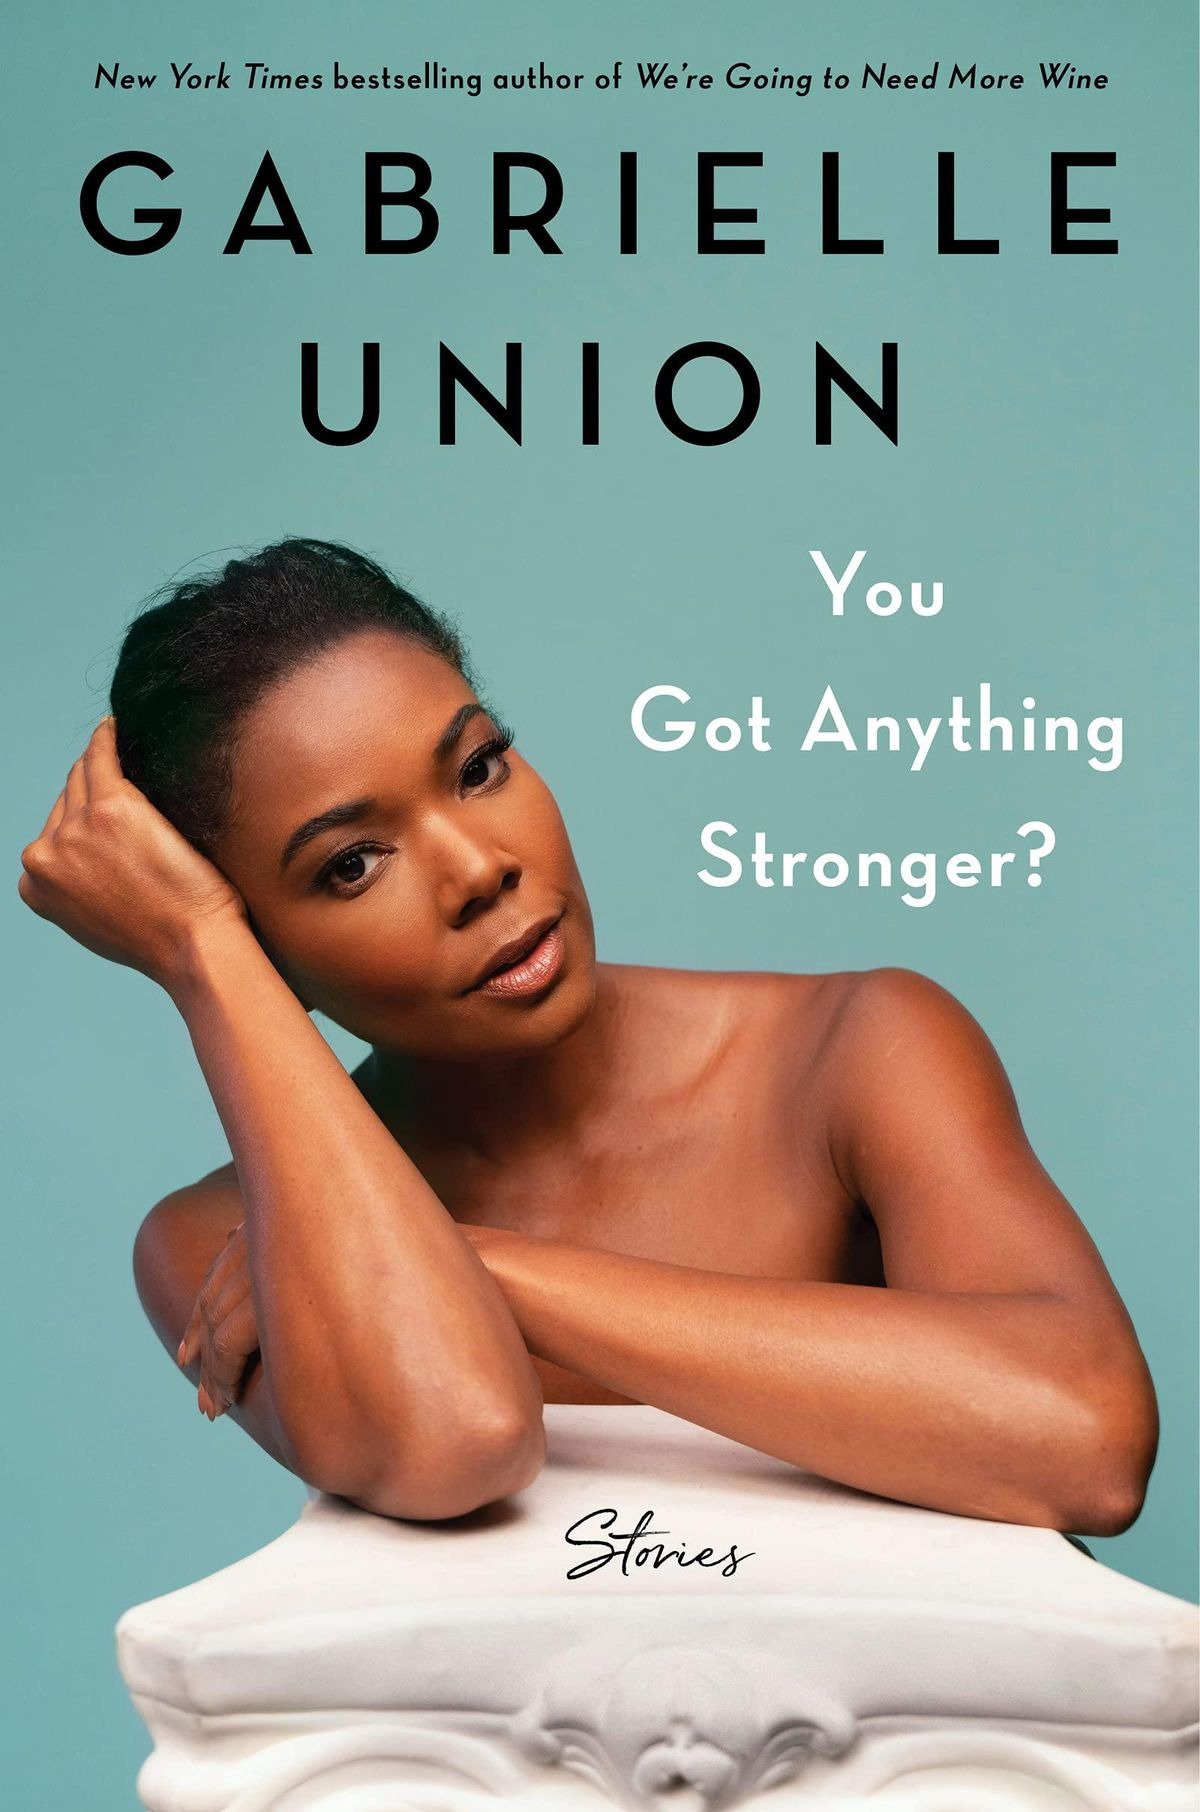 gabrielle union you got anything stronger stories